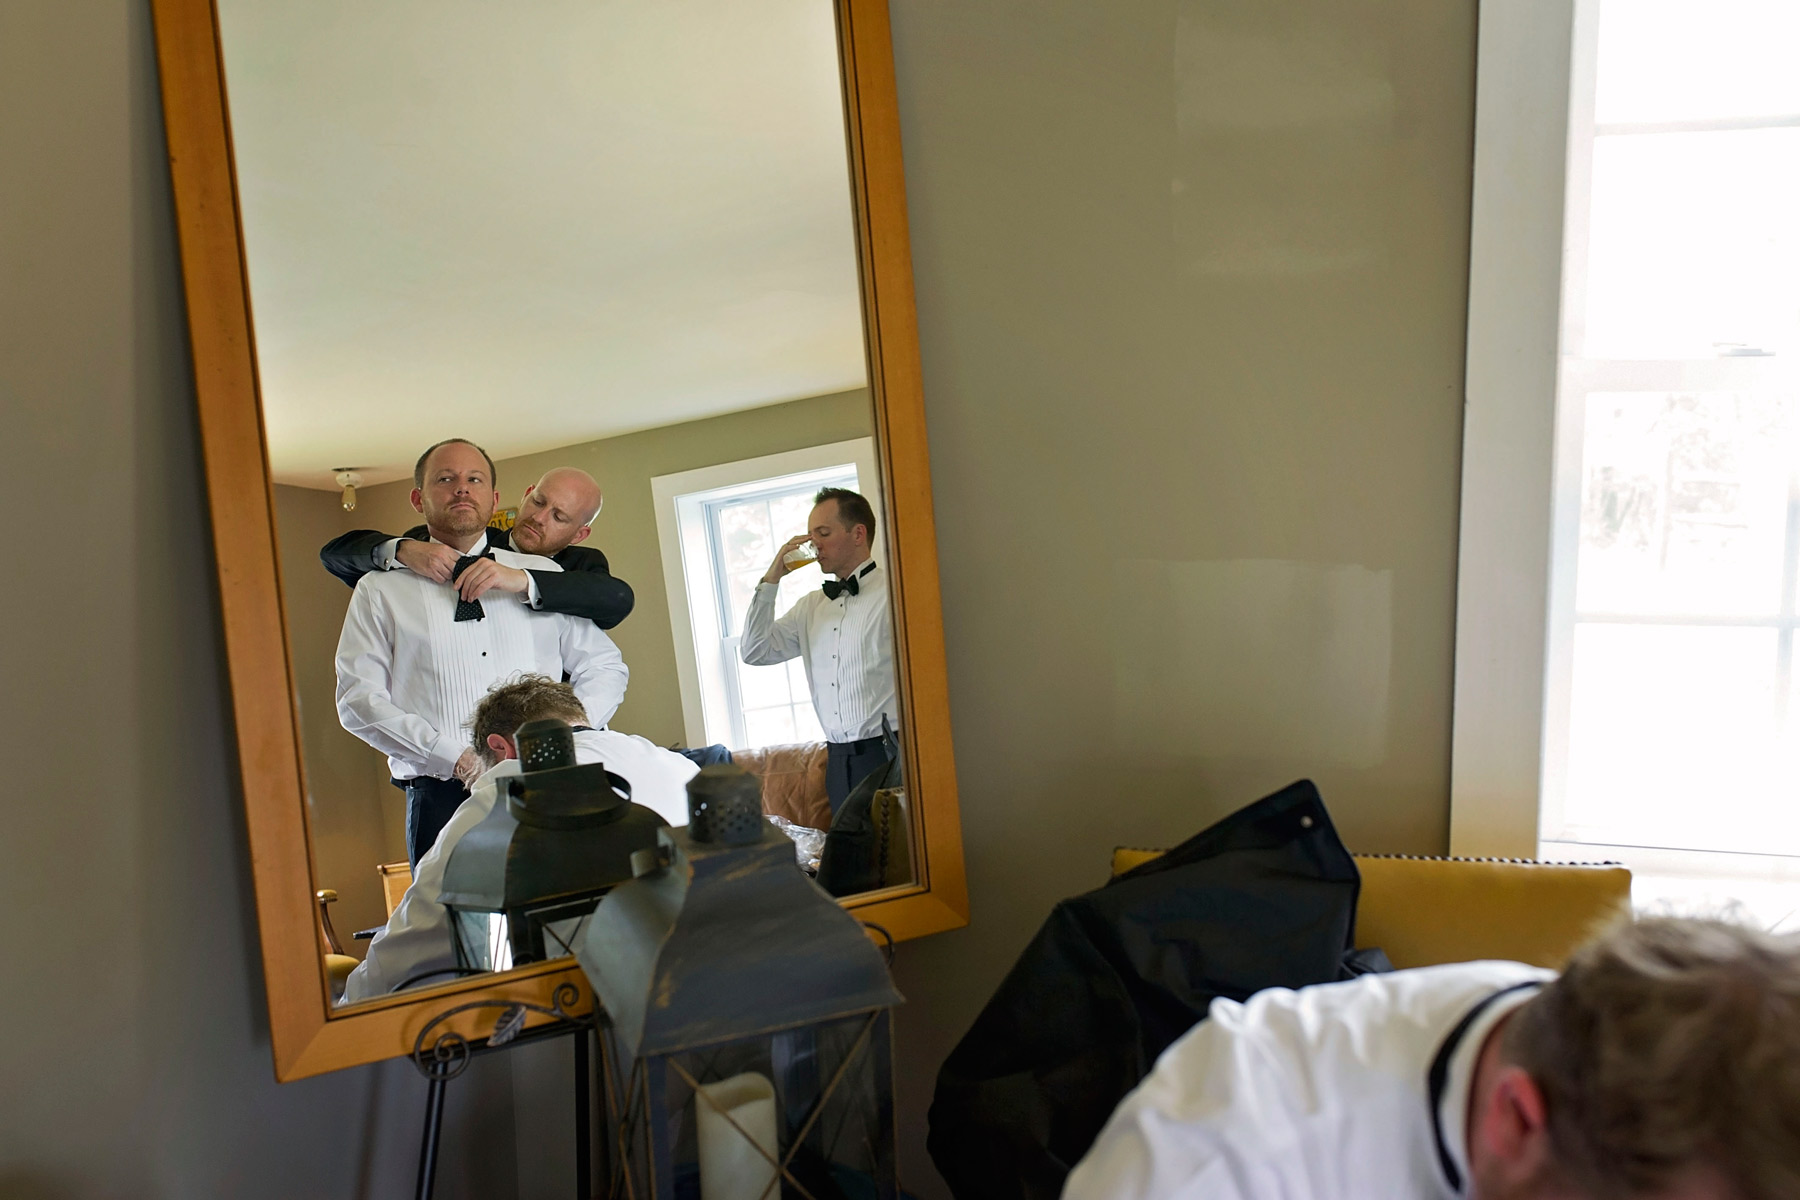 mirror reflection of the groomsmen getting dressed